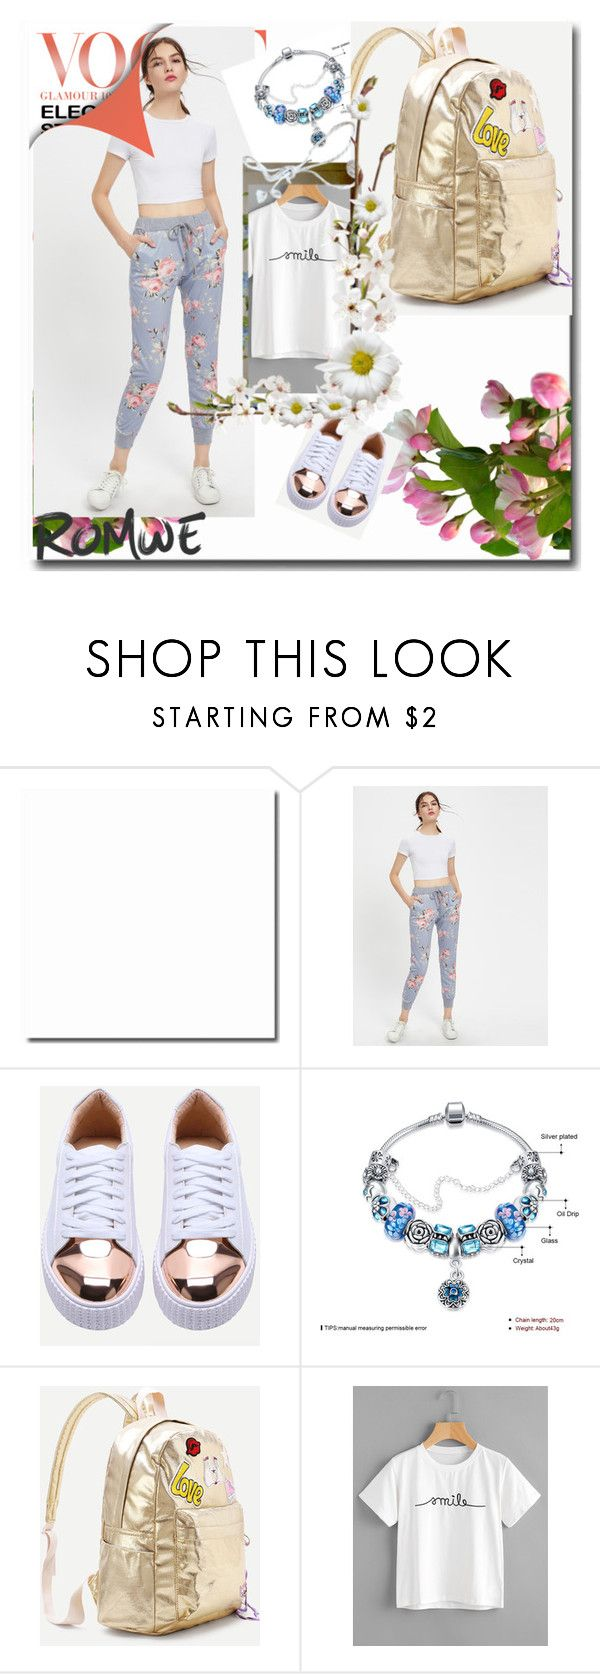 """""""Romwe 58"""" by dilruha ❤ liked on Polyvore featuring inbox"""